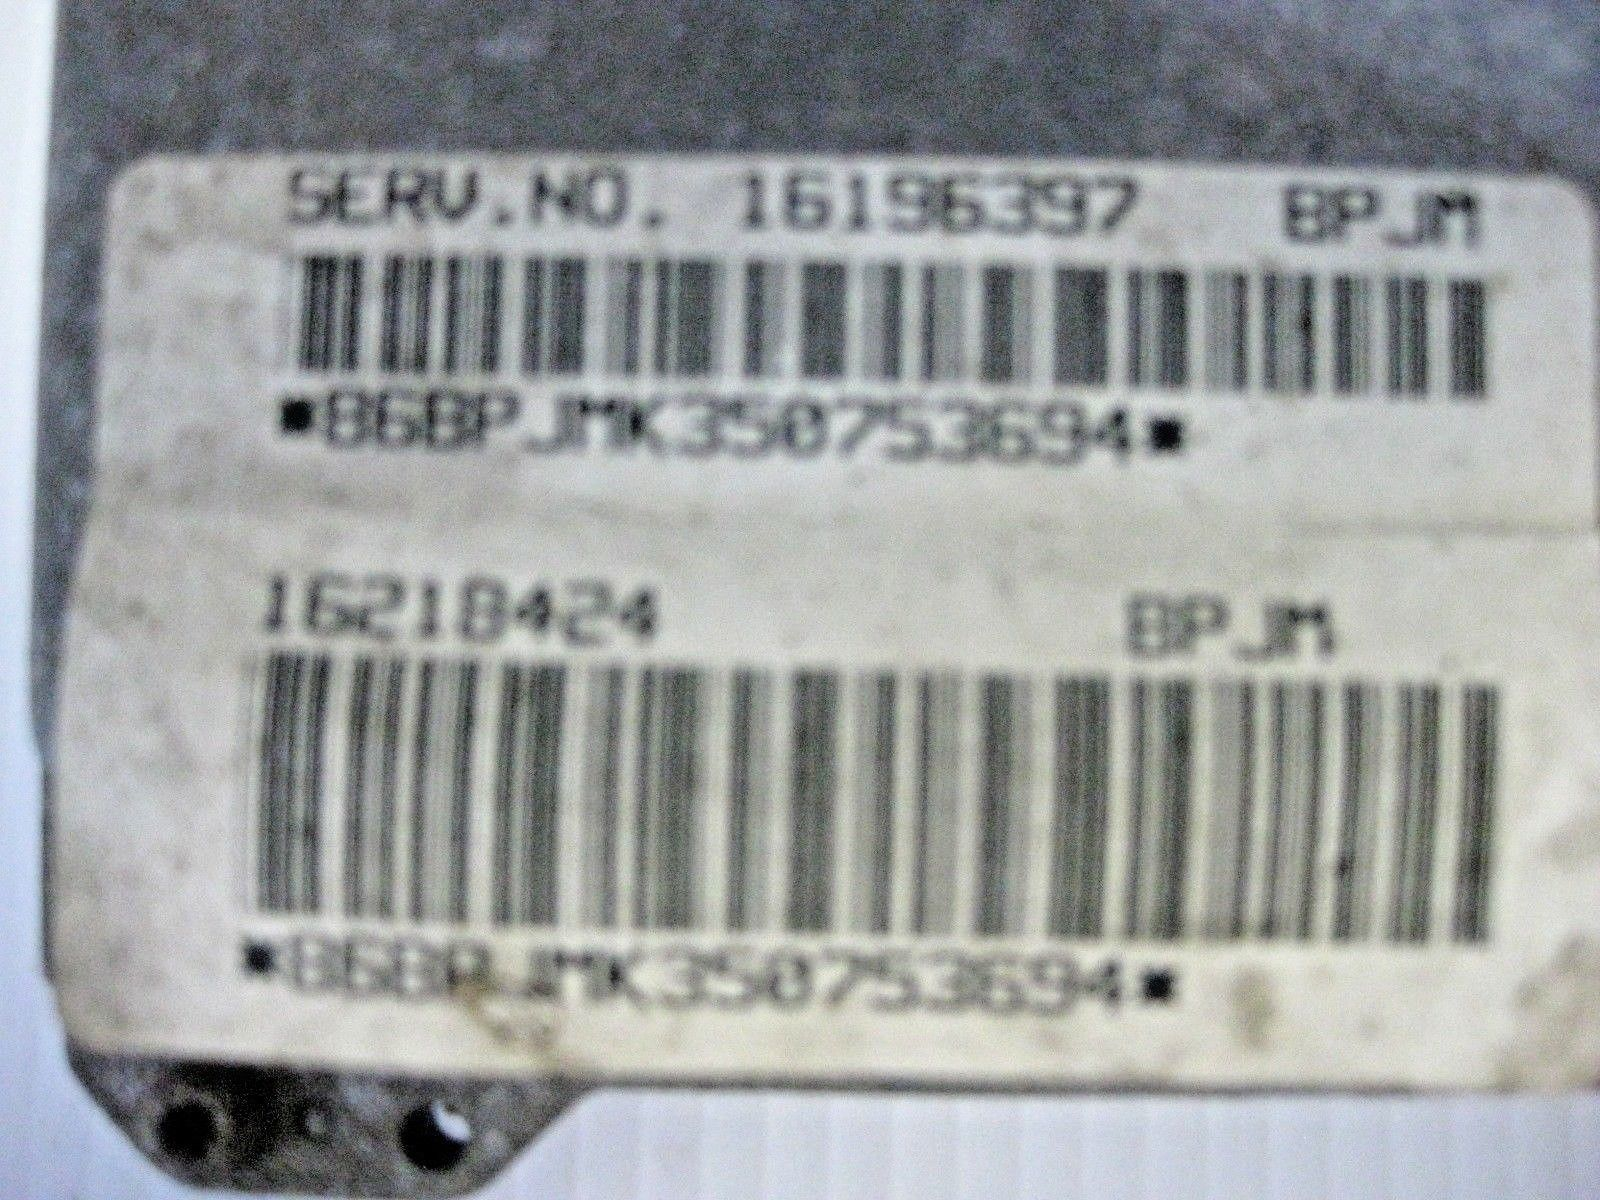 Oldsmobile Cutlass 1995 ECM ECU Module OEM 16218424